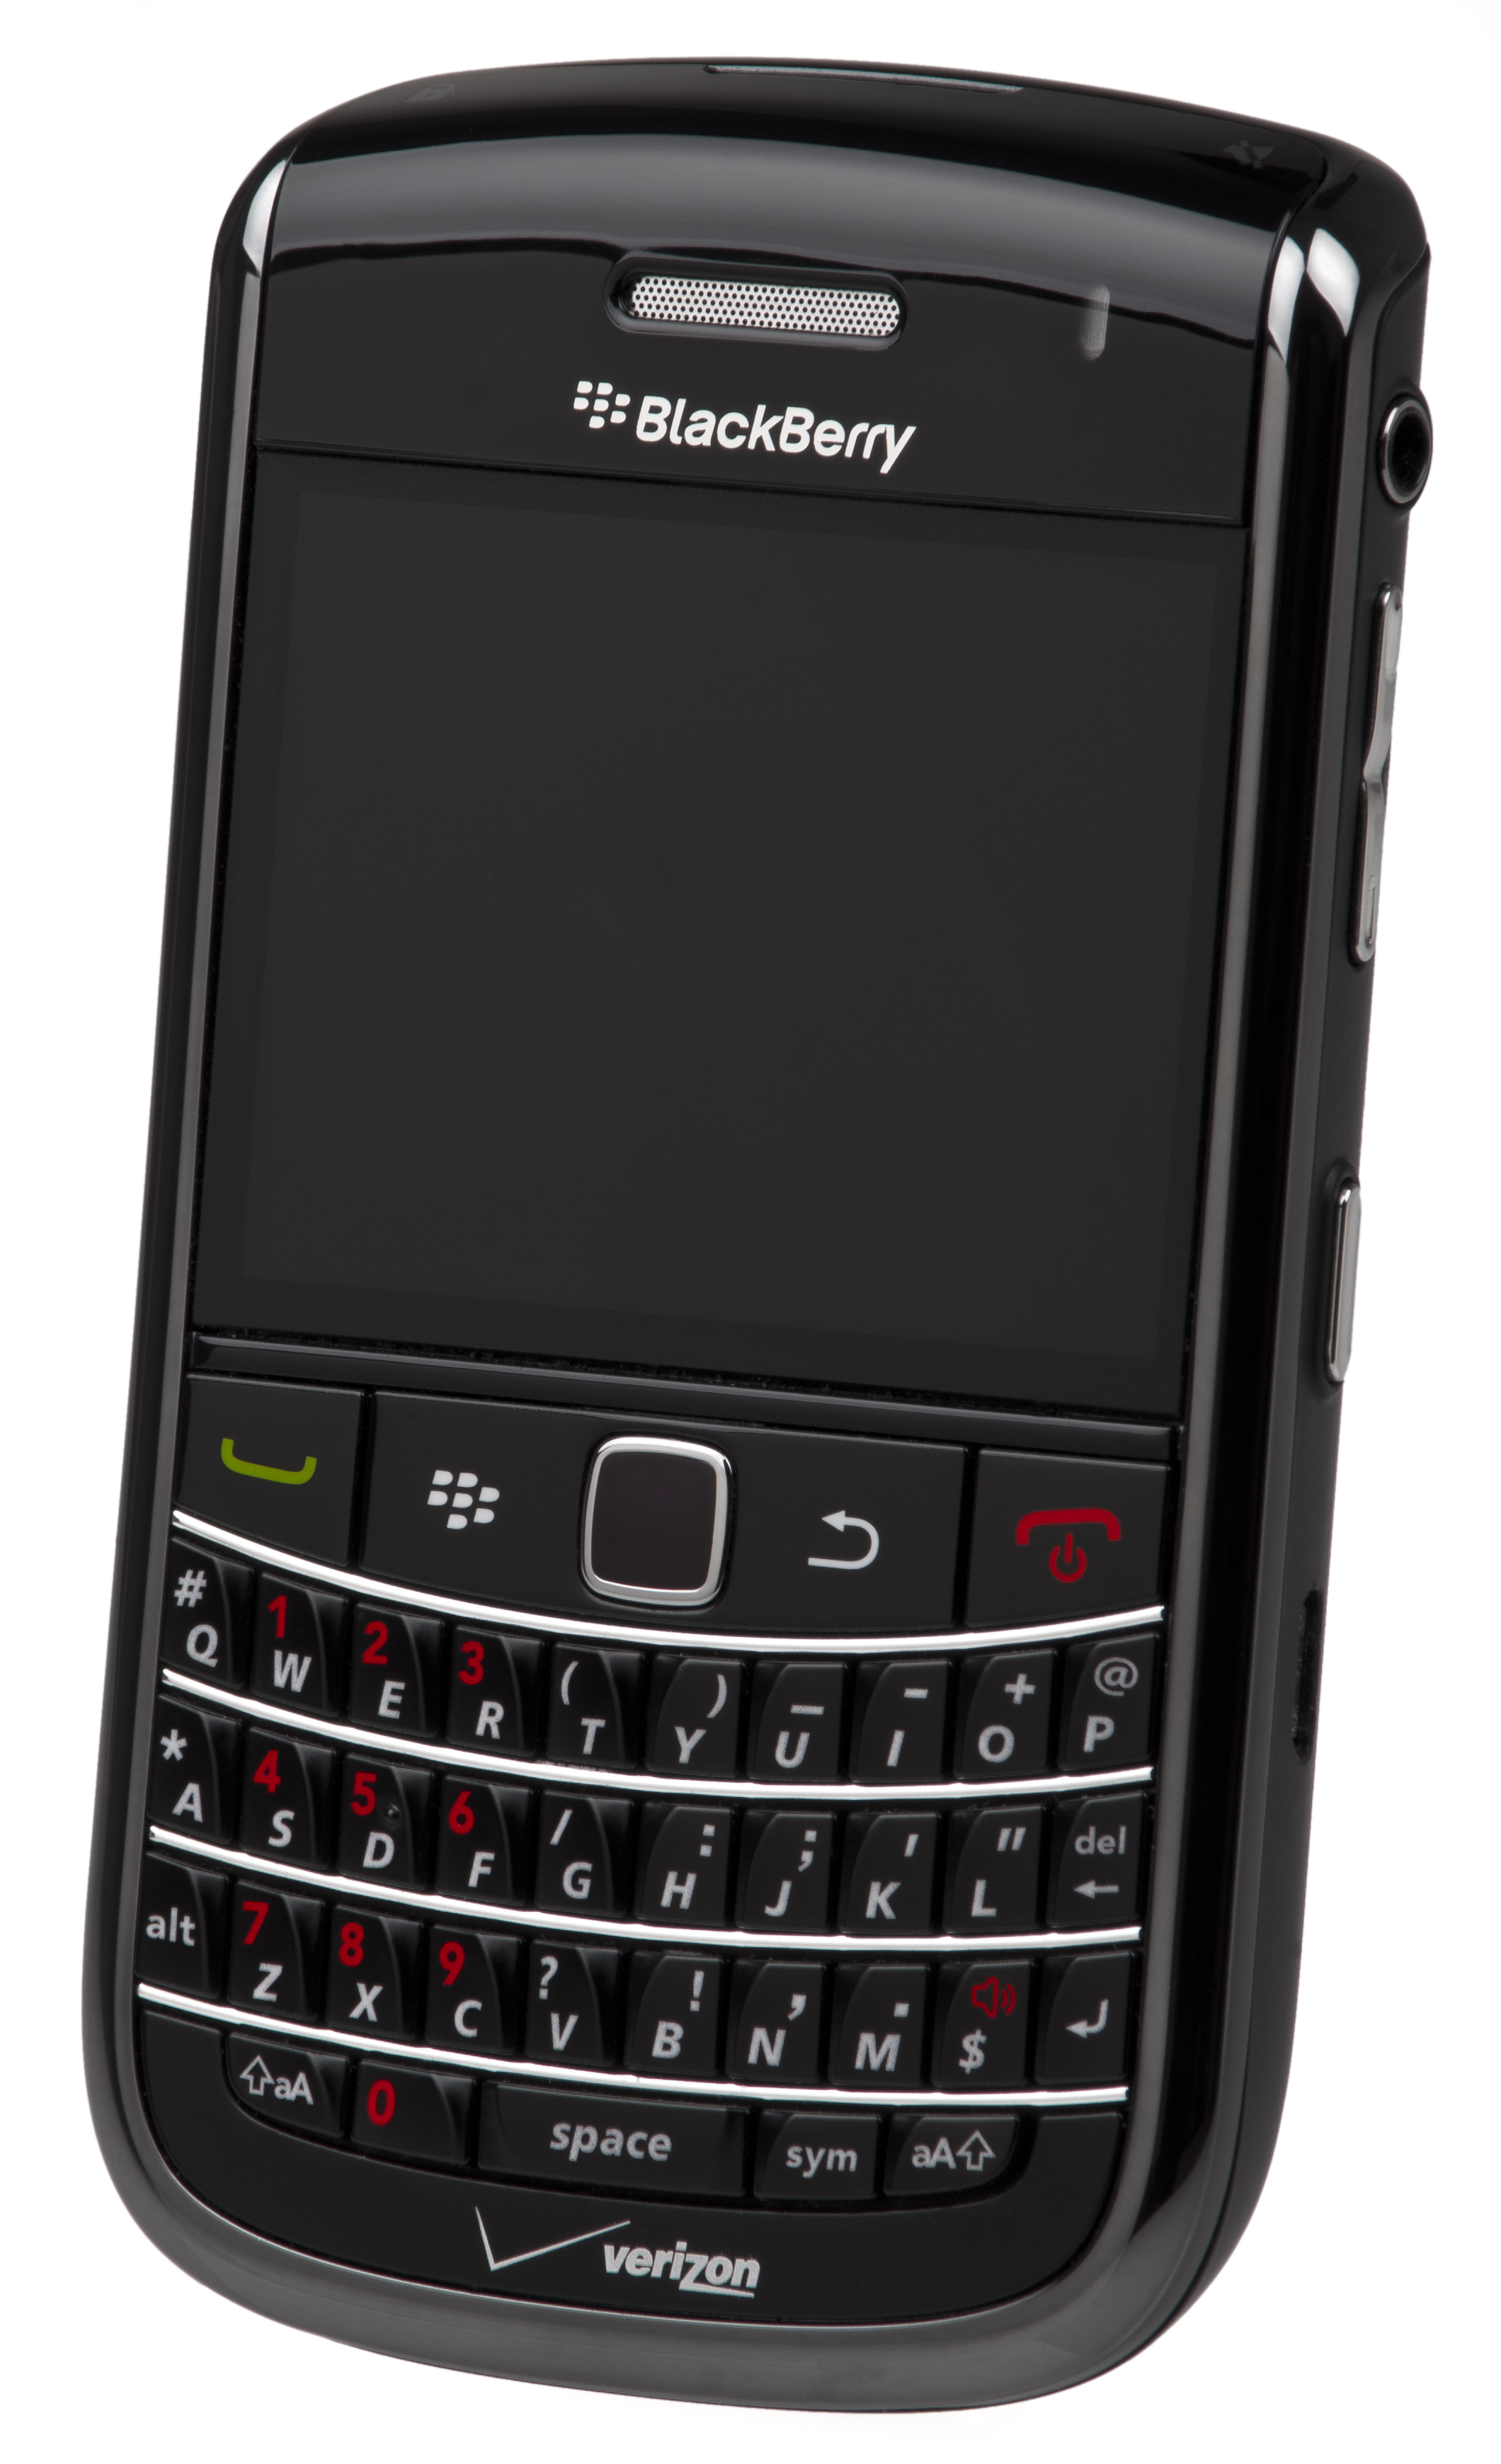 blacberry